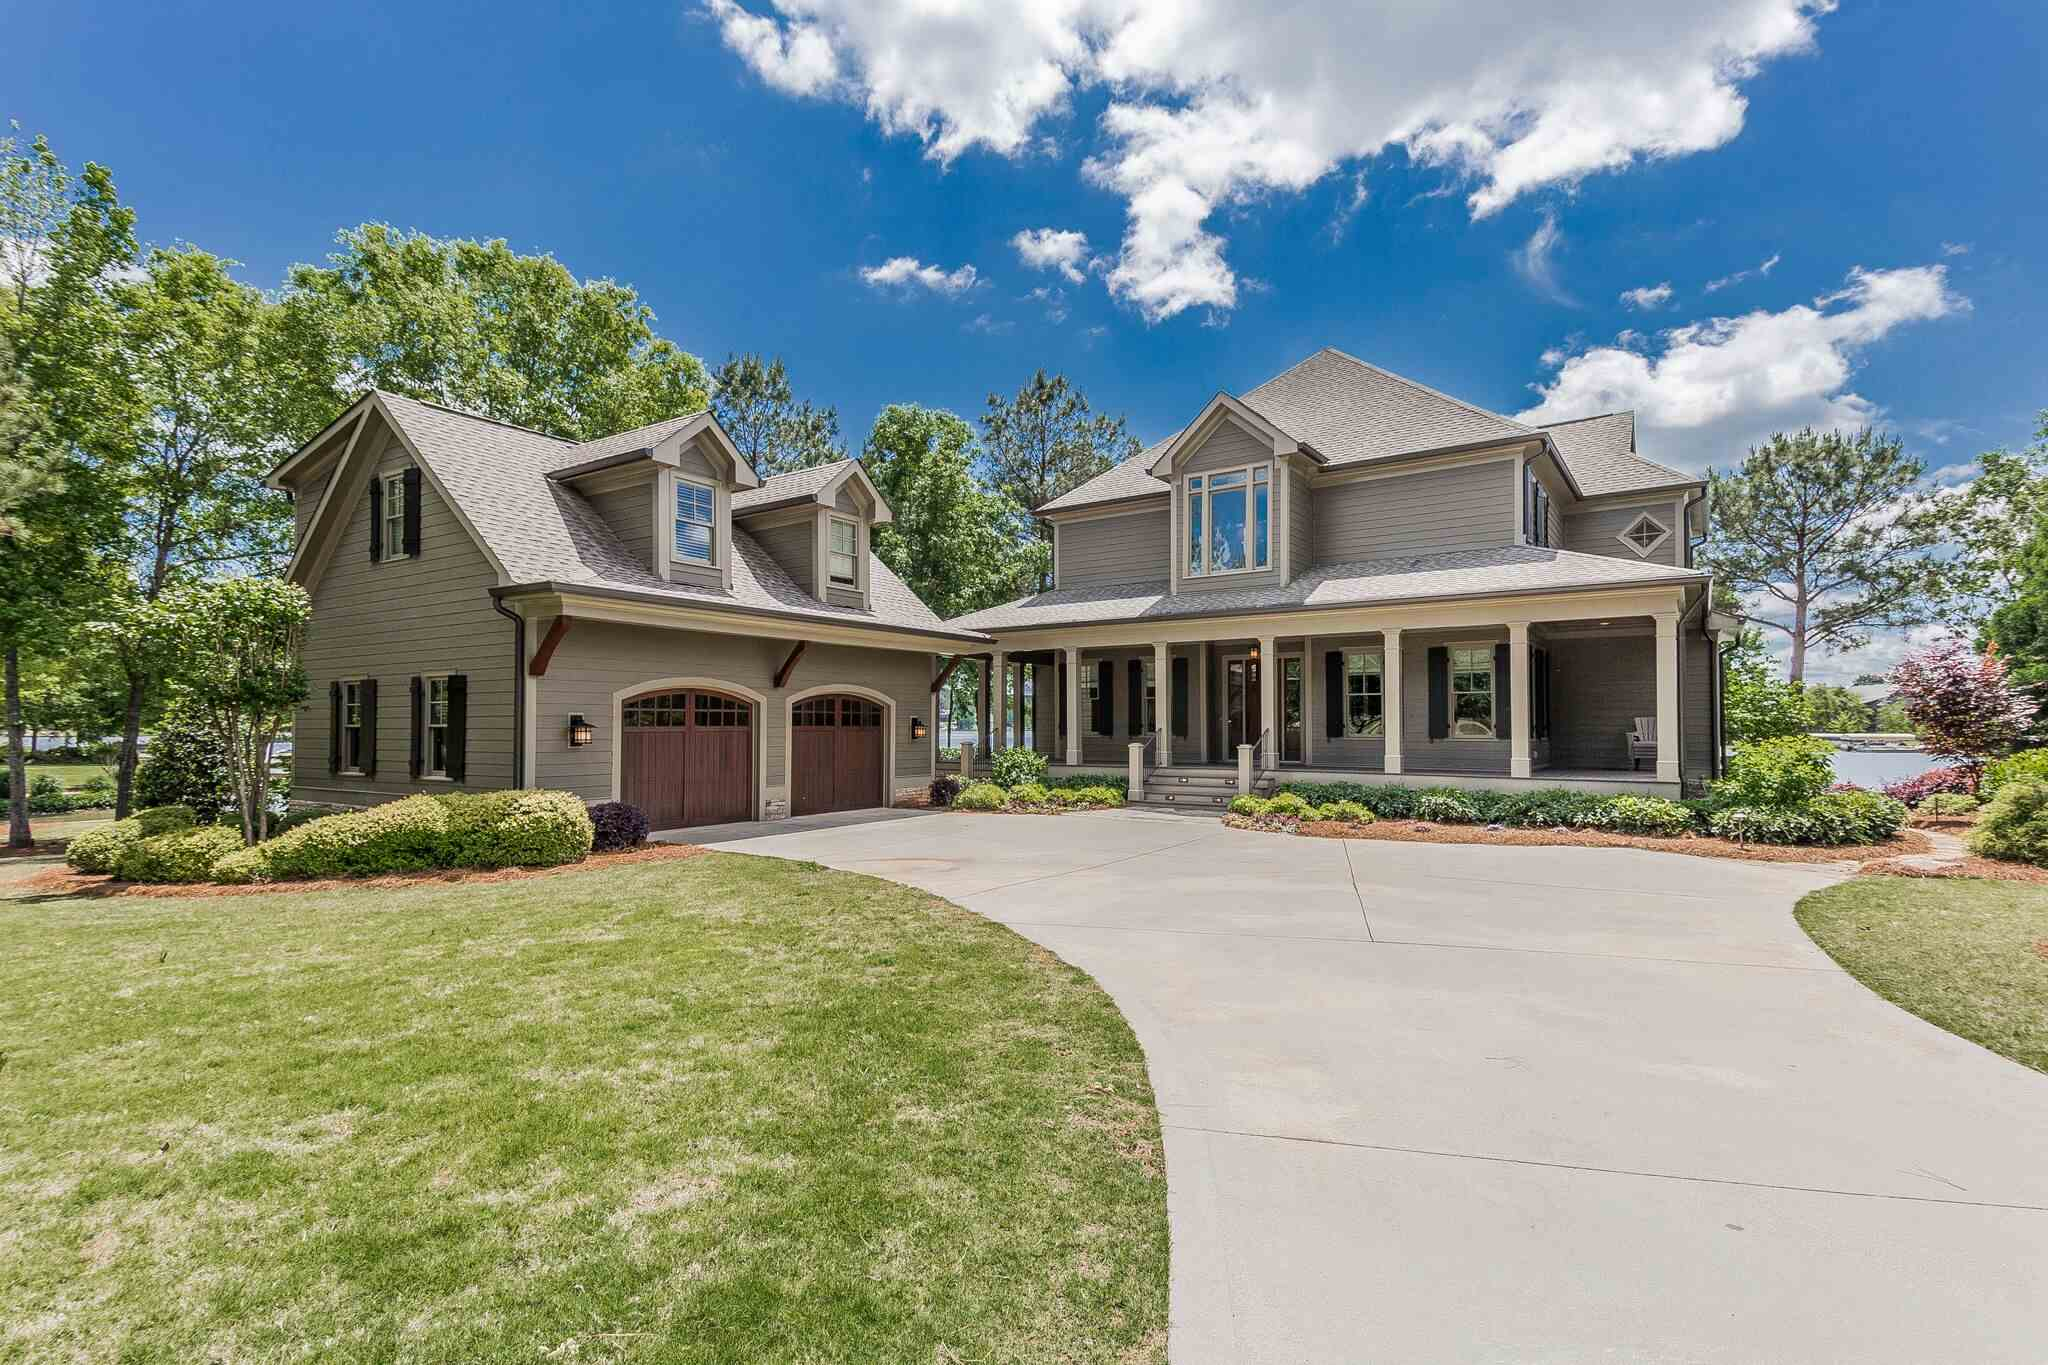 118 HAWKS RIDGE, Lake Oconee, Georgia